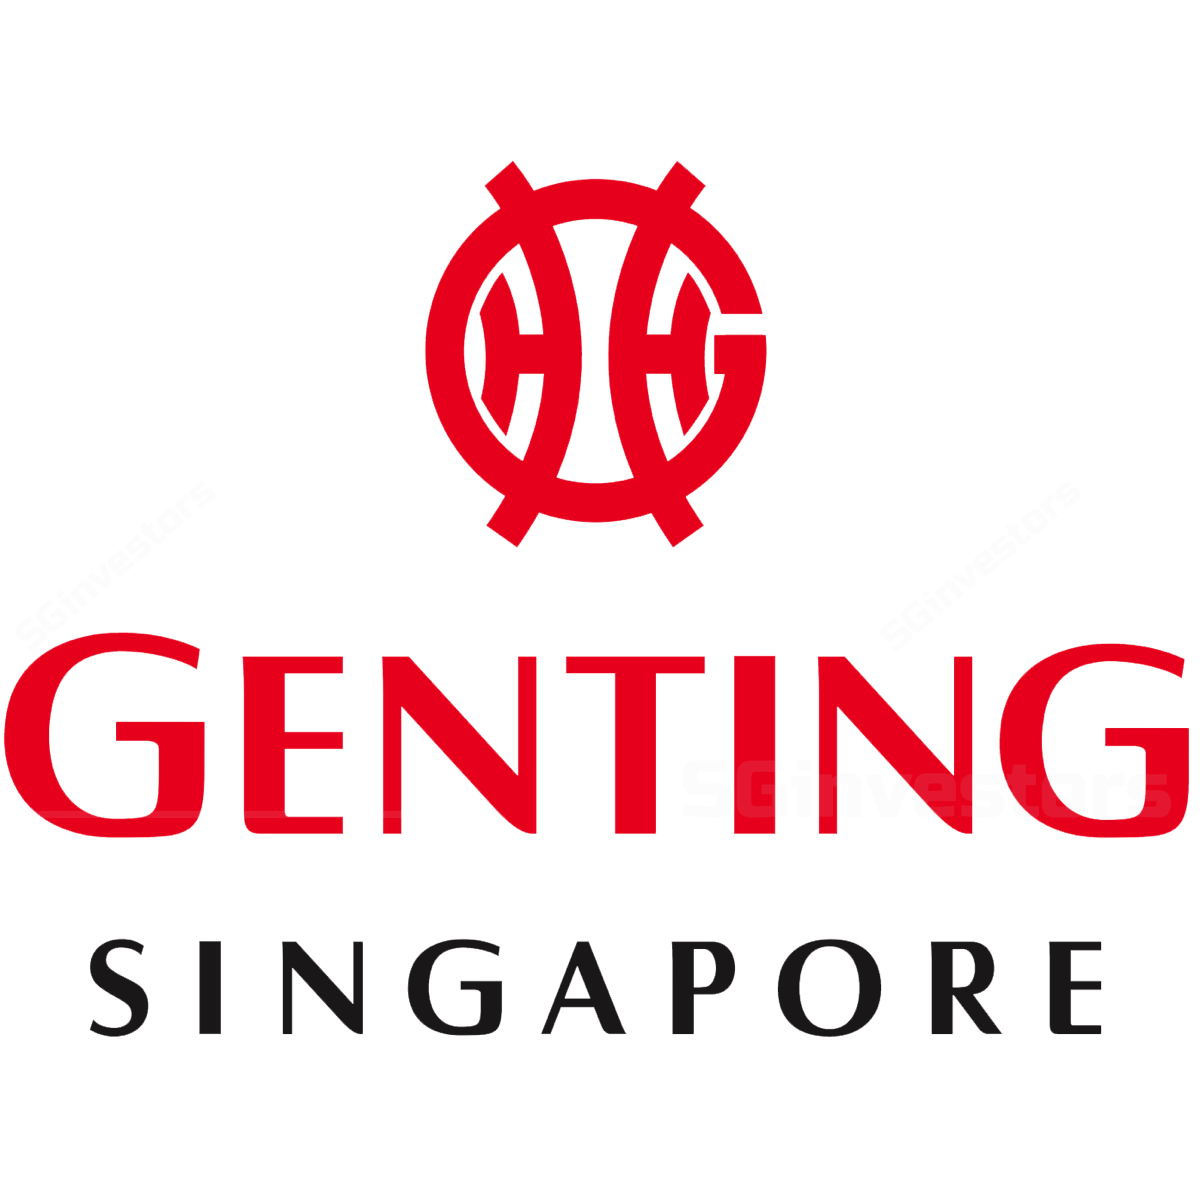 Genting Singapore - DBS Vickers 2018-05-11: Don't Miss The Chance